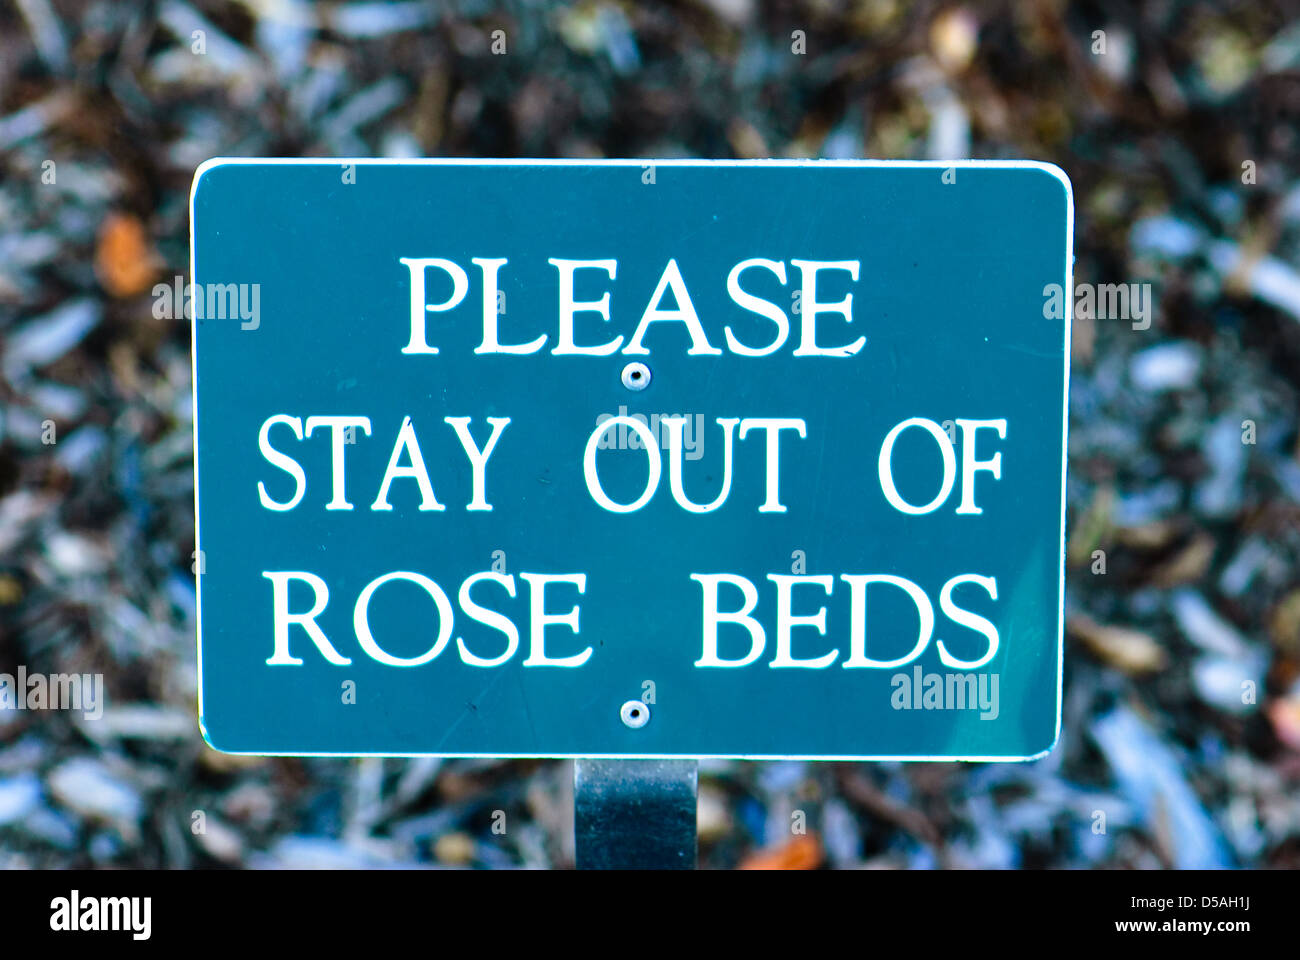 Sign that says Please stay out of rose beds. - Stock Image